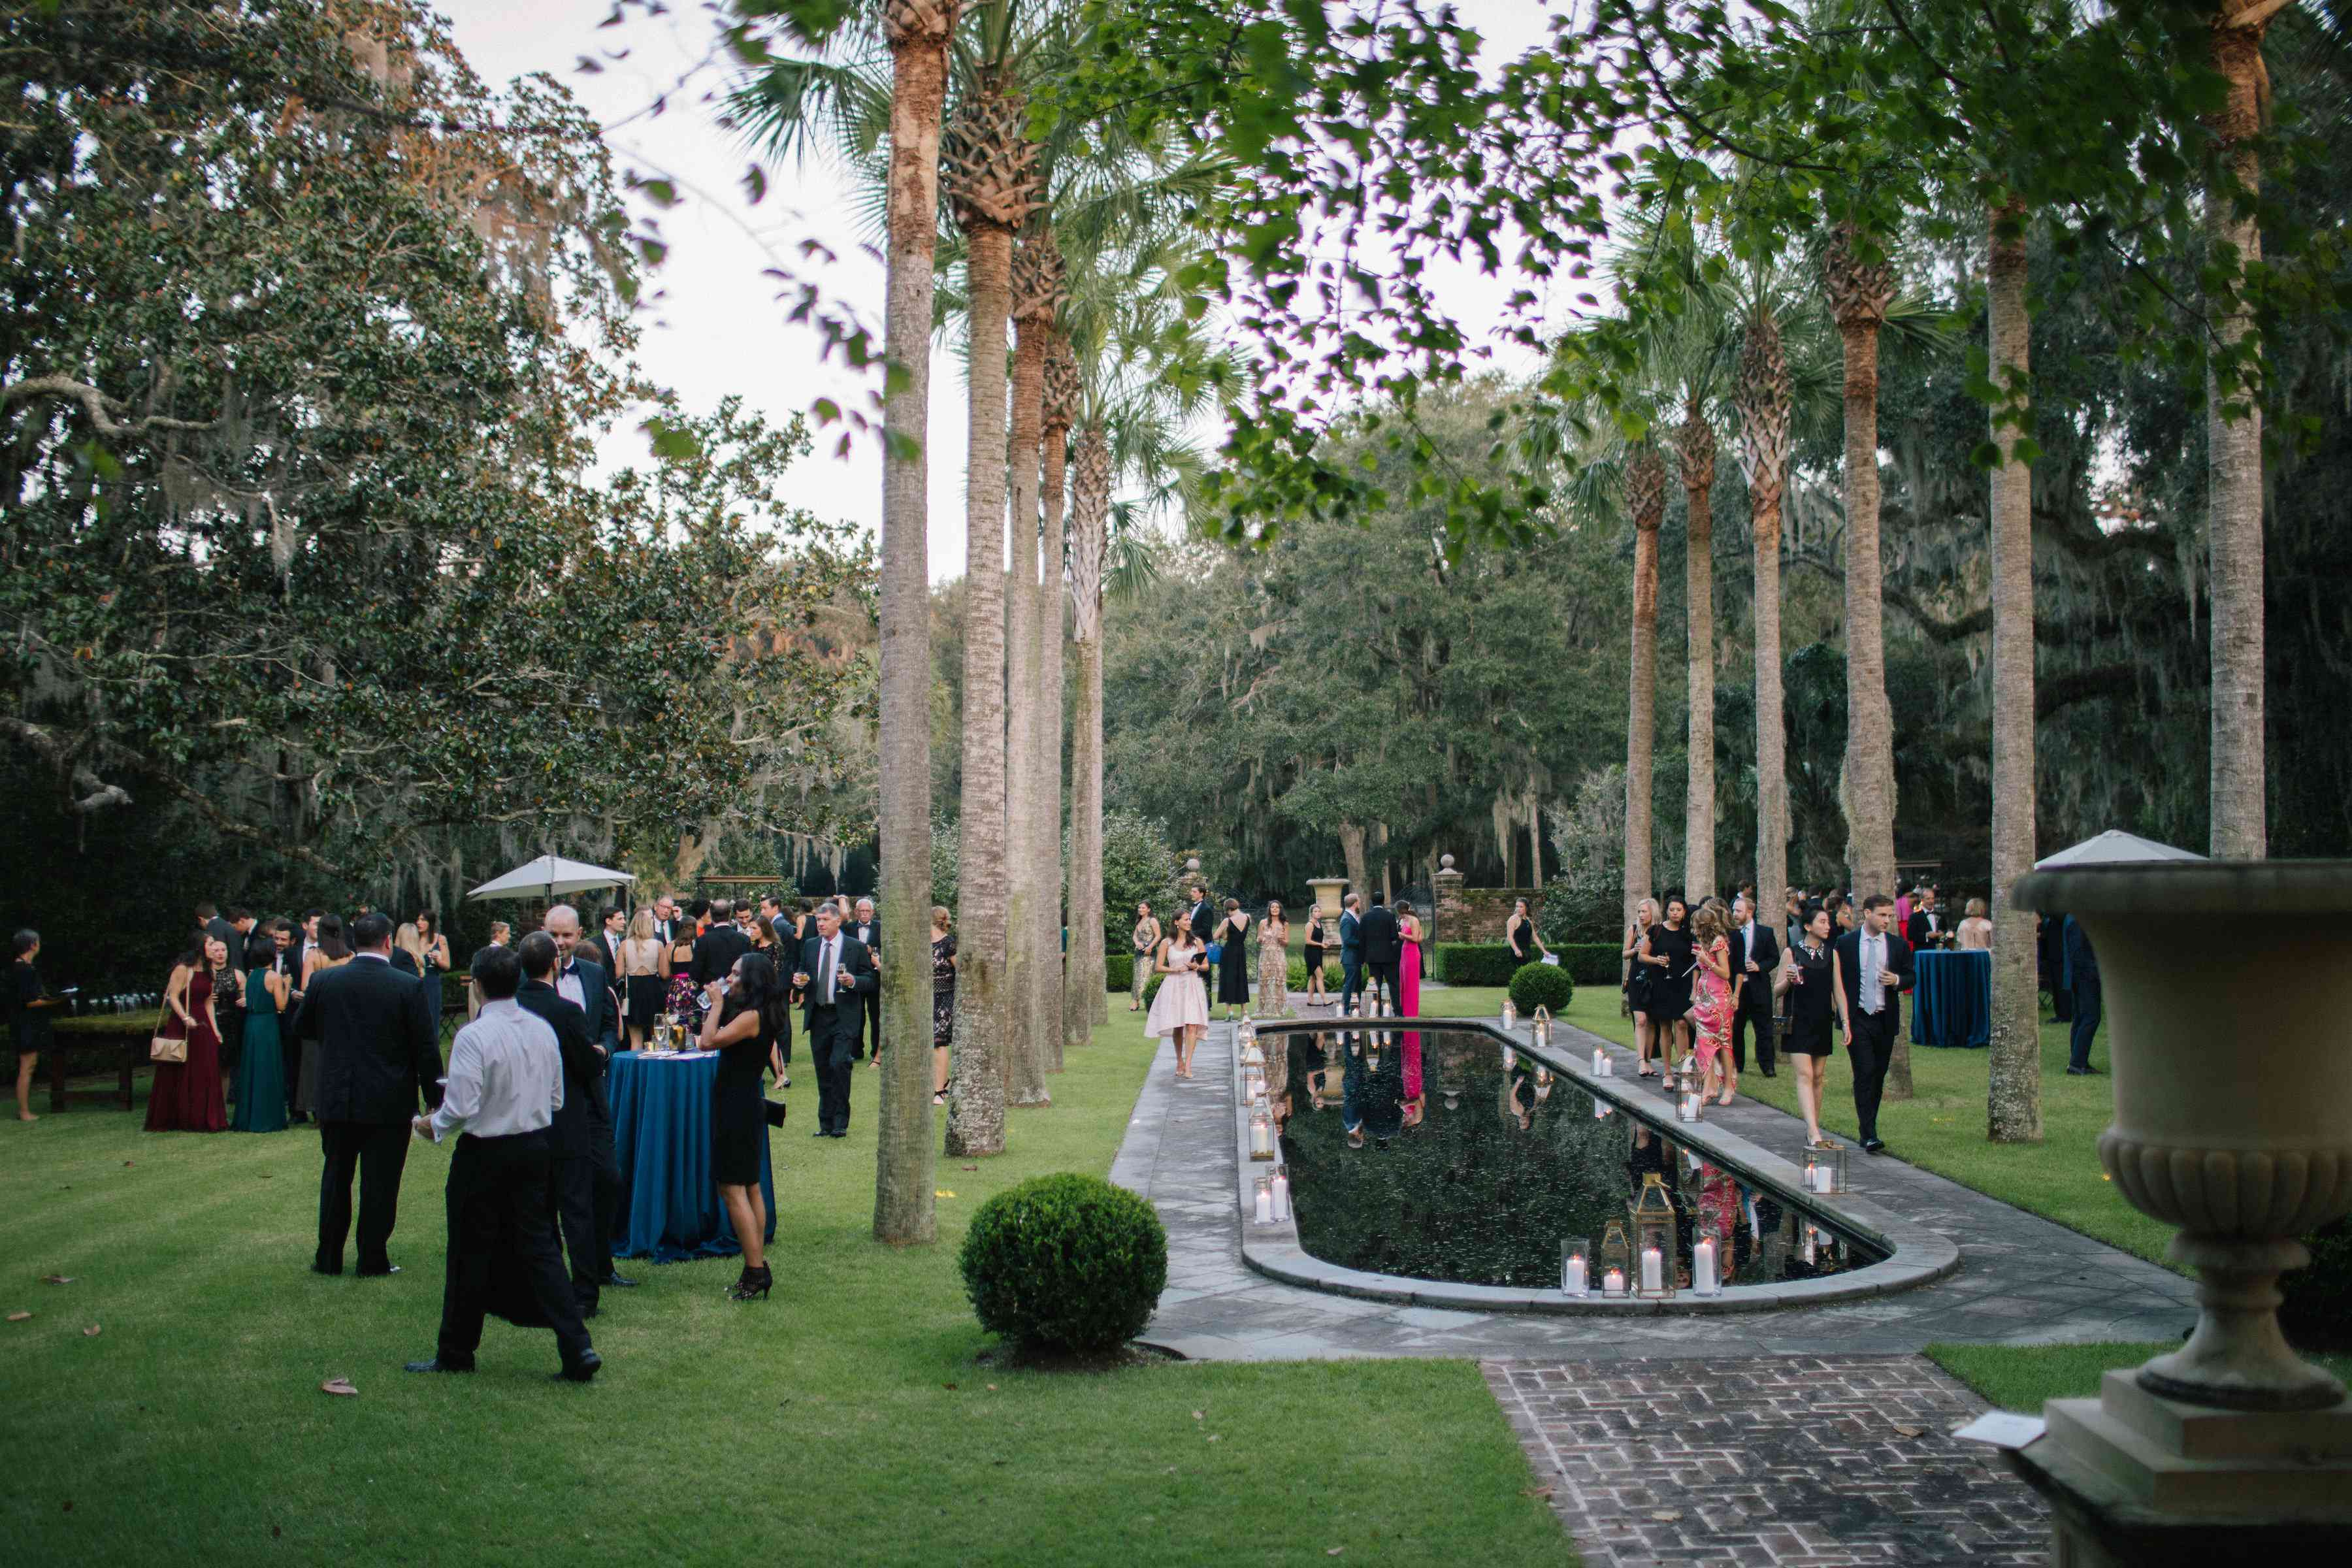 <p>Guests at wedding reception outdoors</p><br><br>